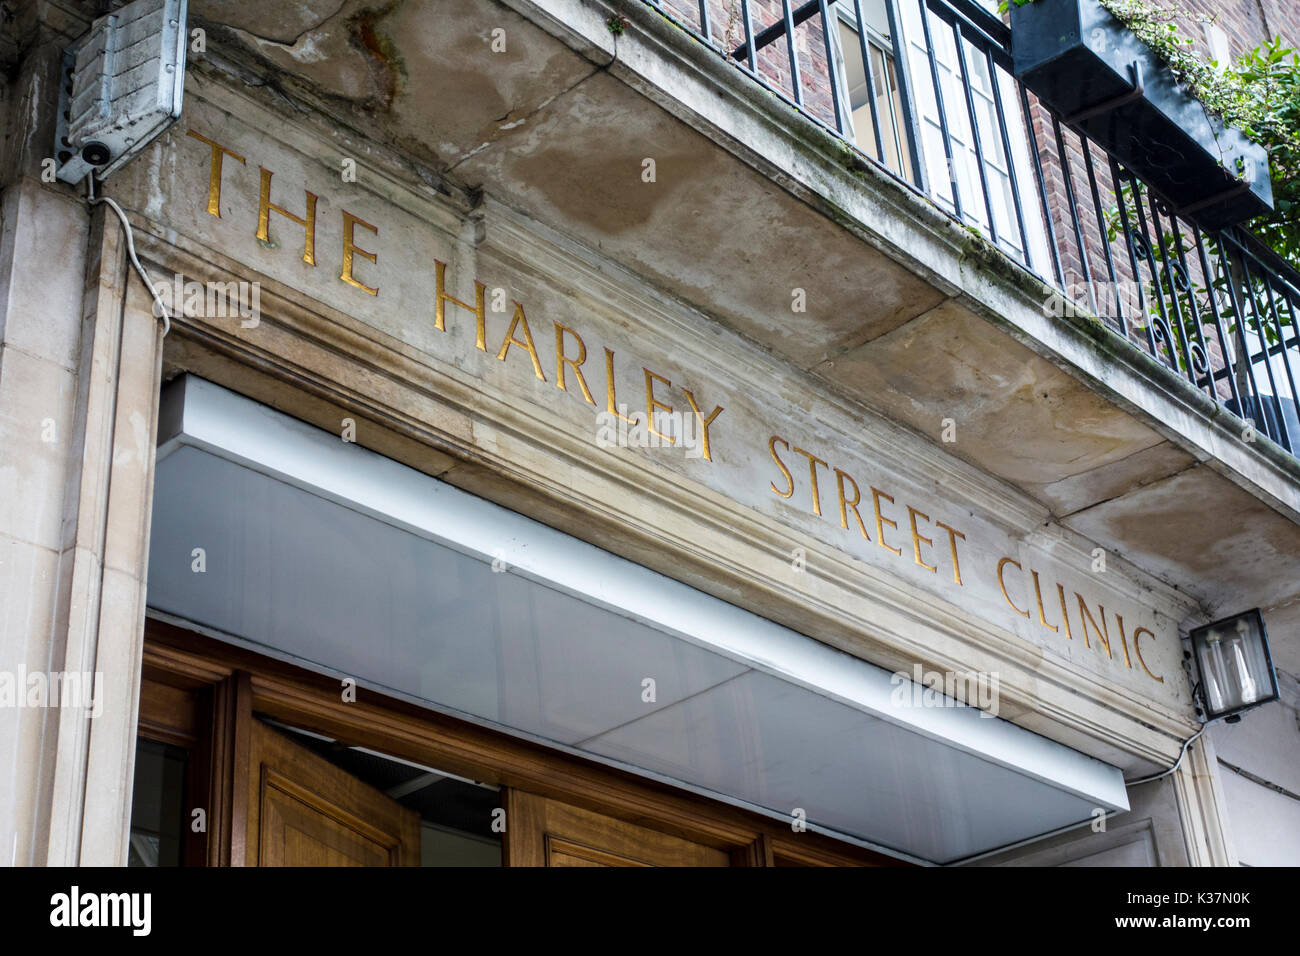 The Harley Street Clinic sign above an entrance, London - Stock Image